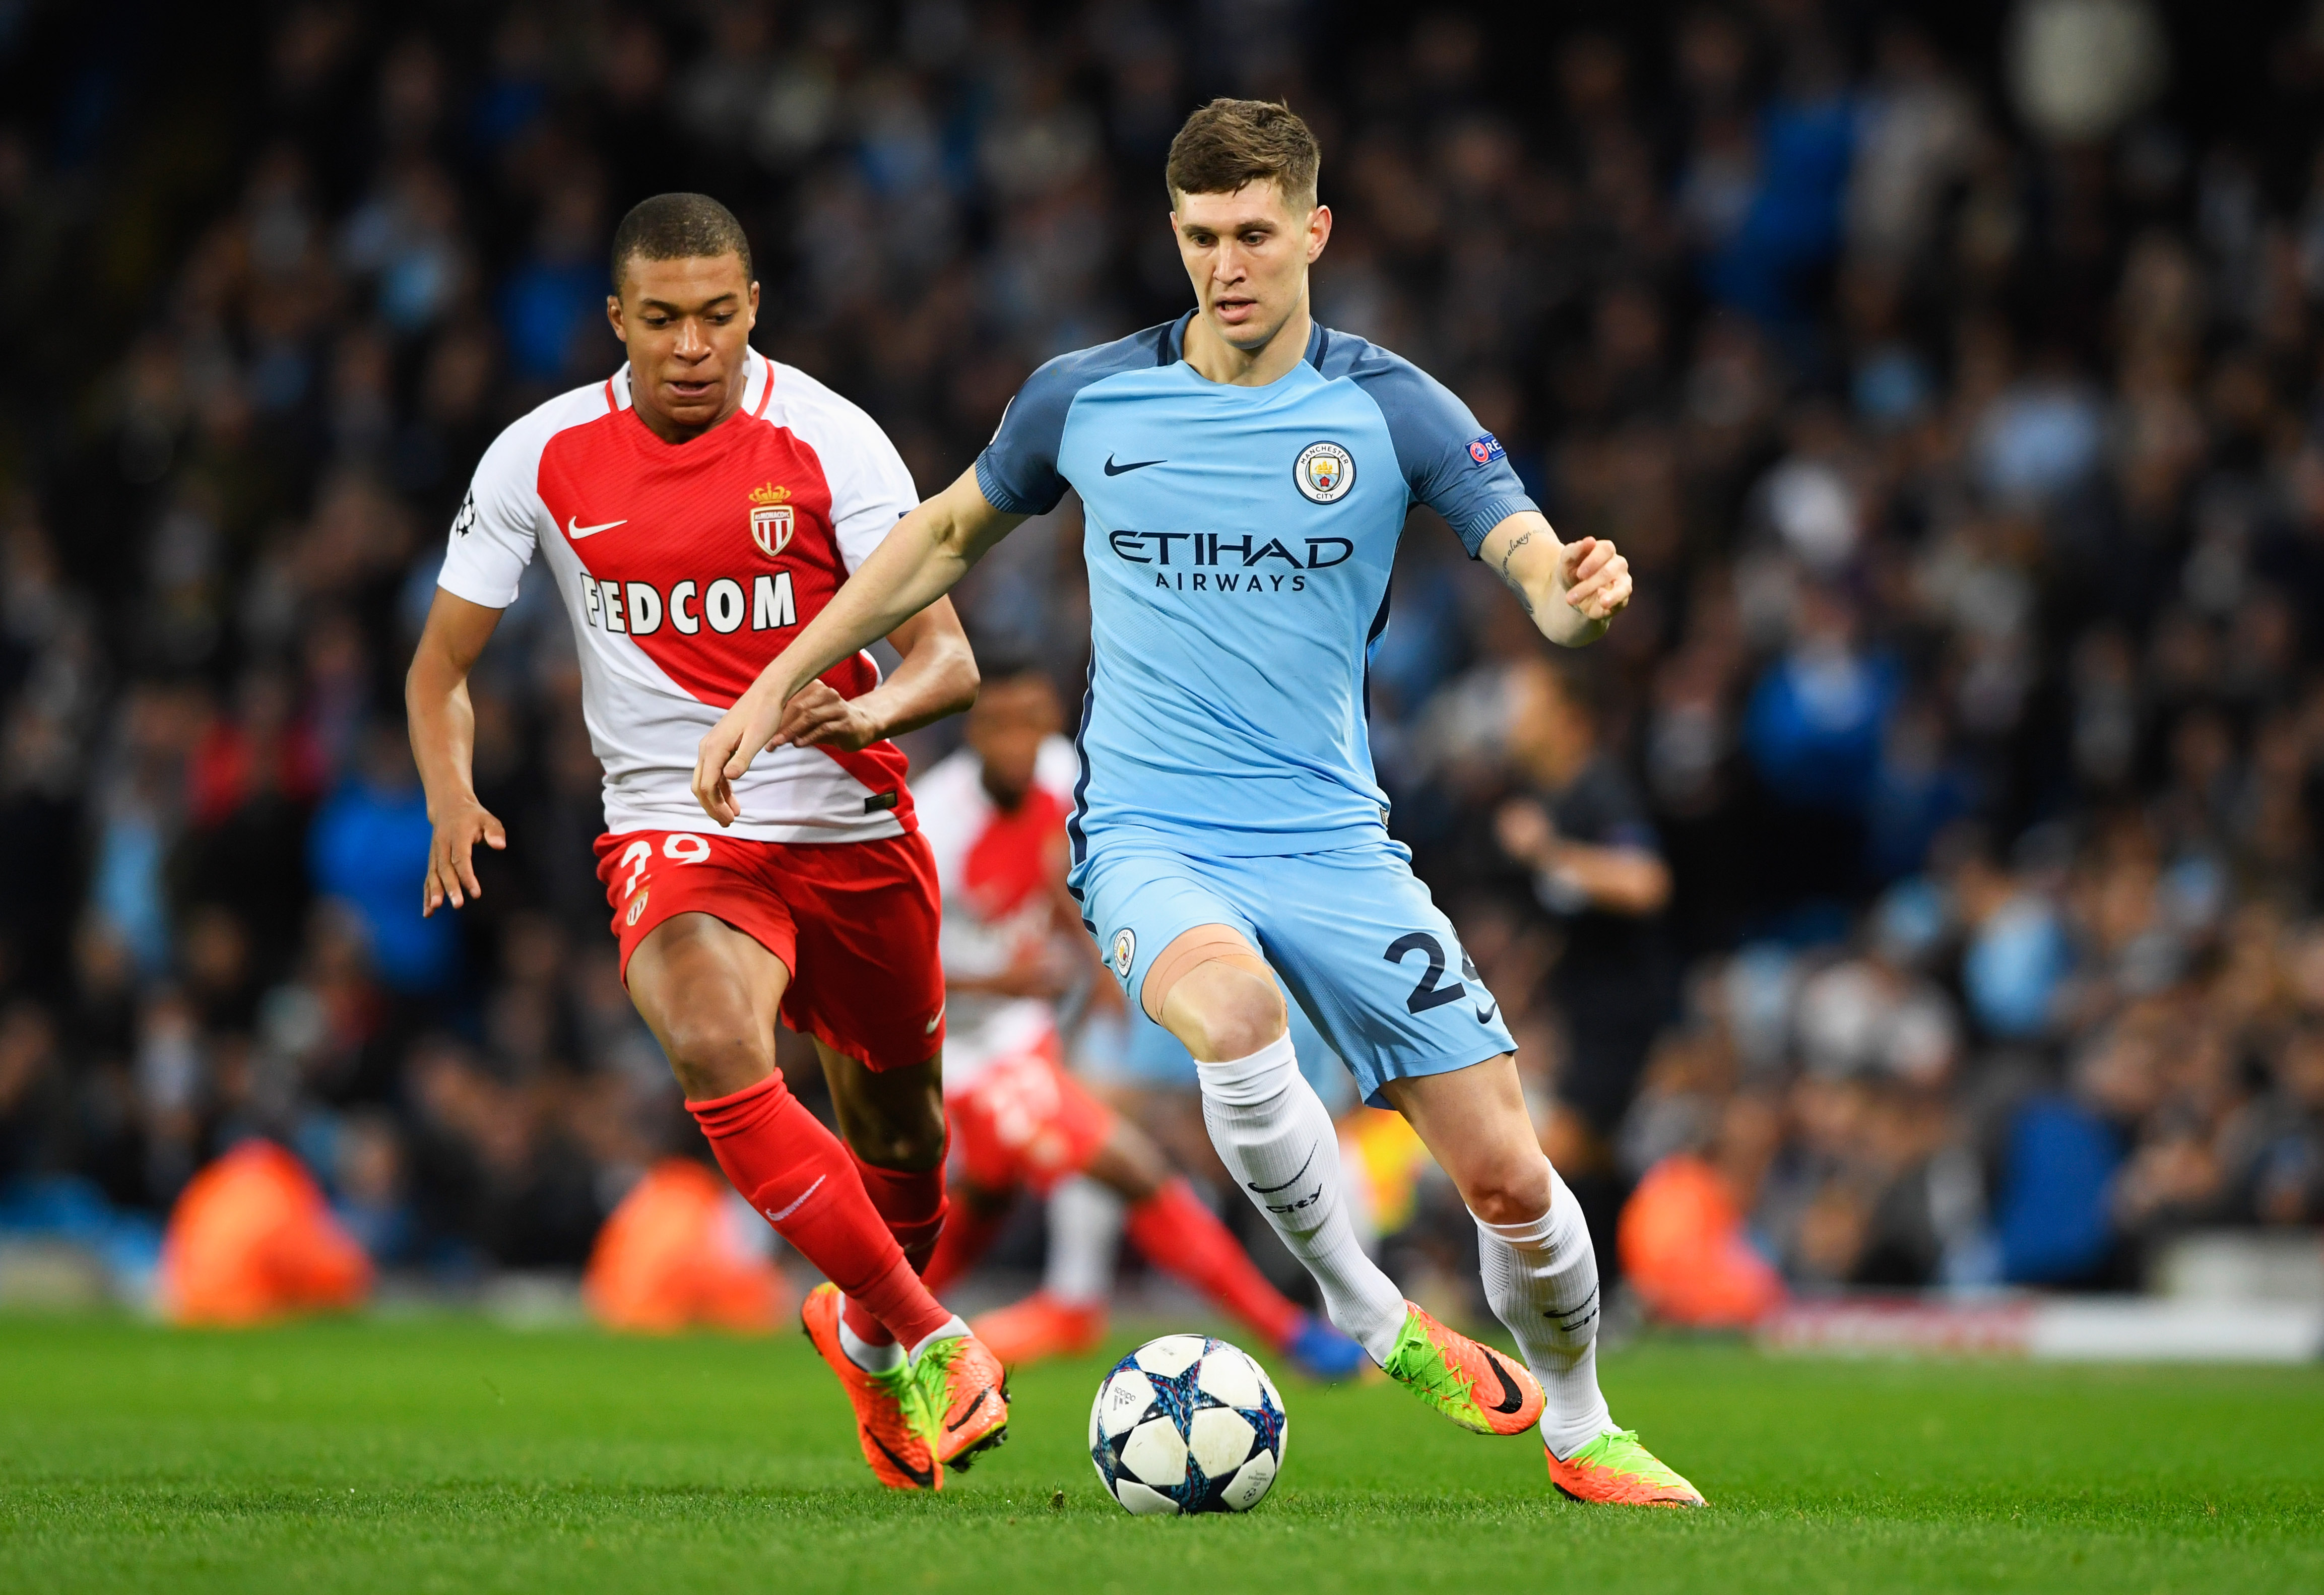 MANCHESTER, ENGLAND - FEBRUARY 21: John Stones of Manchester City is chased by Kylian Mbappe of AS Monaco during the UEFA Champions League Round of 16 first leg match between Manchester City FC and AS Monaco at Etihad Stadium on February 21, 2017 in Manchester, United Kingdom. (Photo by Stu Forster/Getty Images)